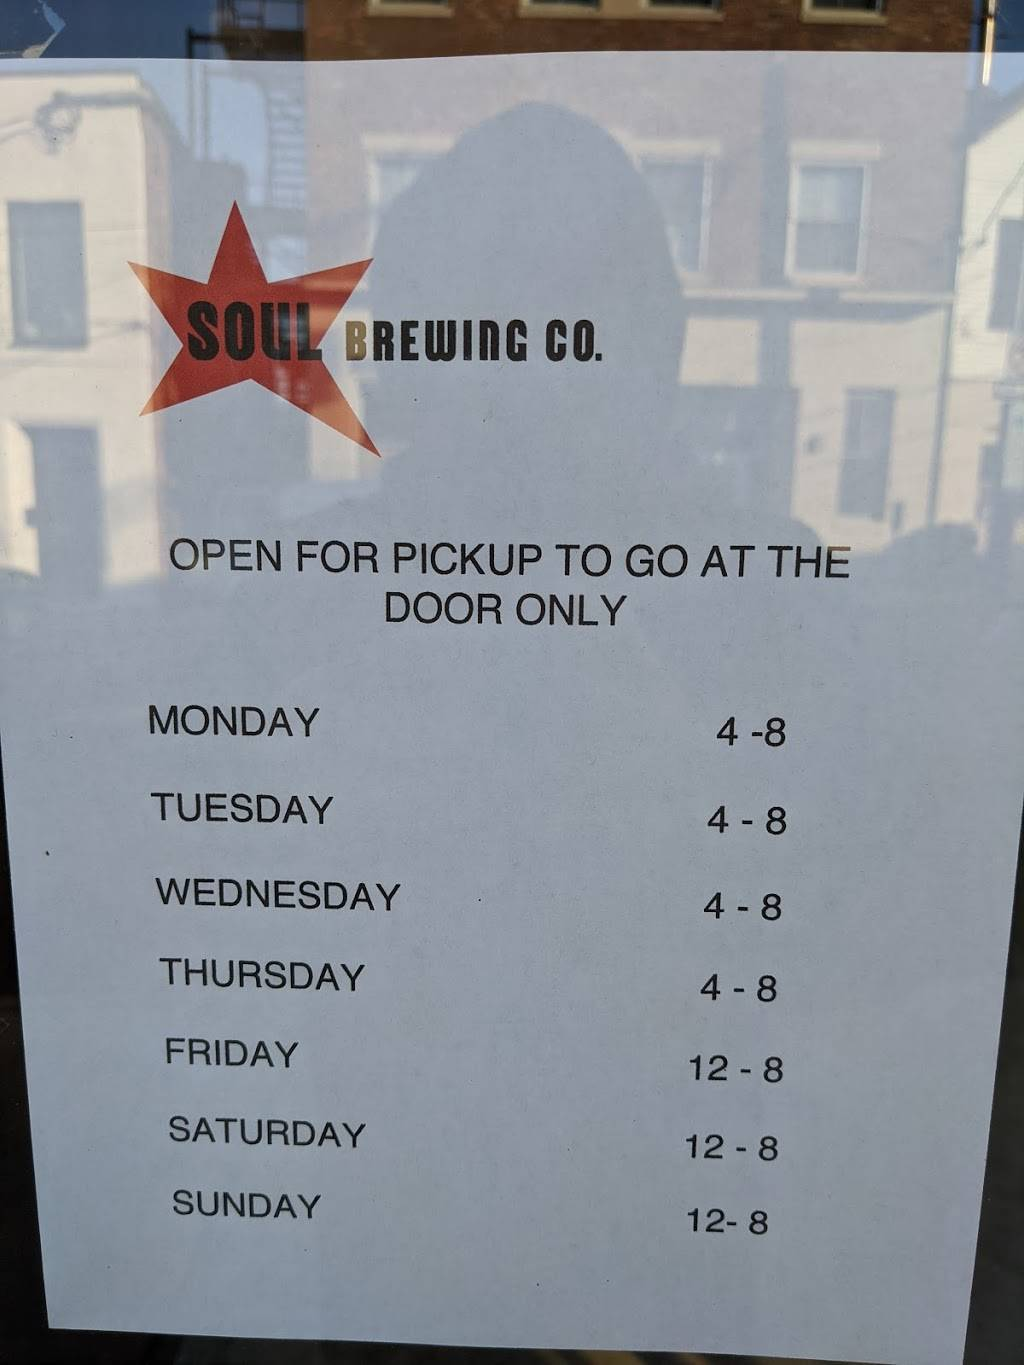 Soul Brewing Company   restaurant   43 Wheeler Ave, Pleasantville, NY 10570, USA   9148007685 OR +1 914-800-7685